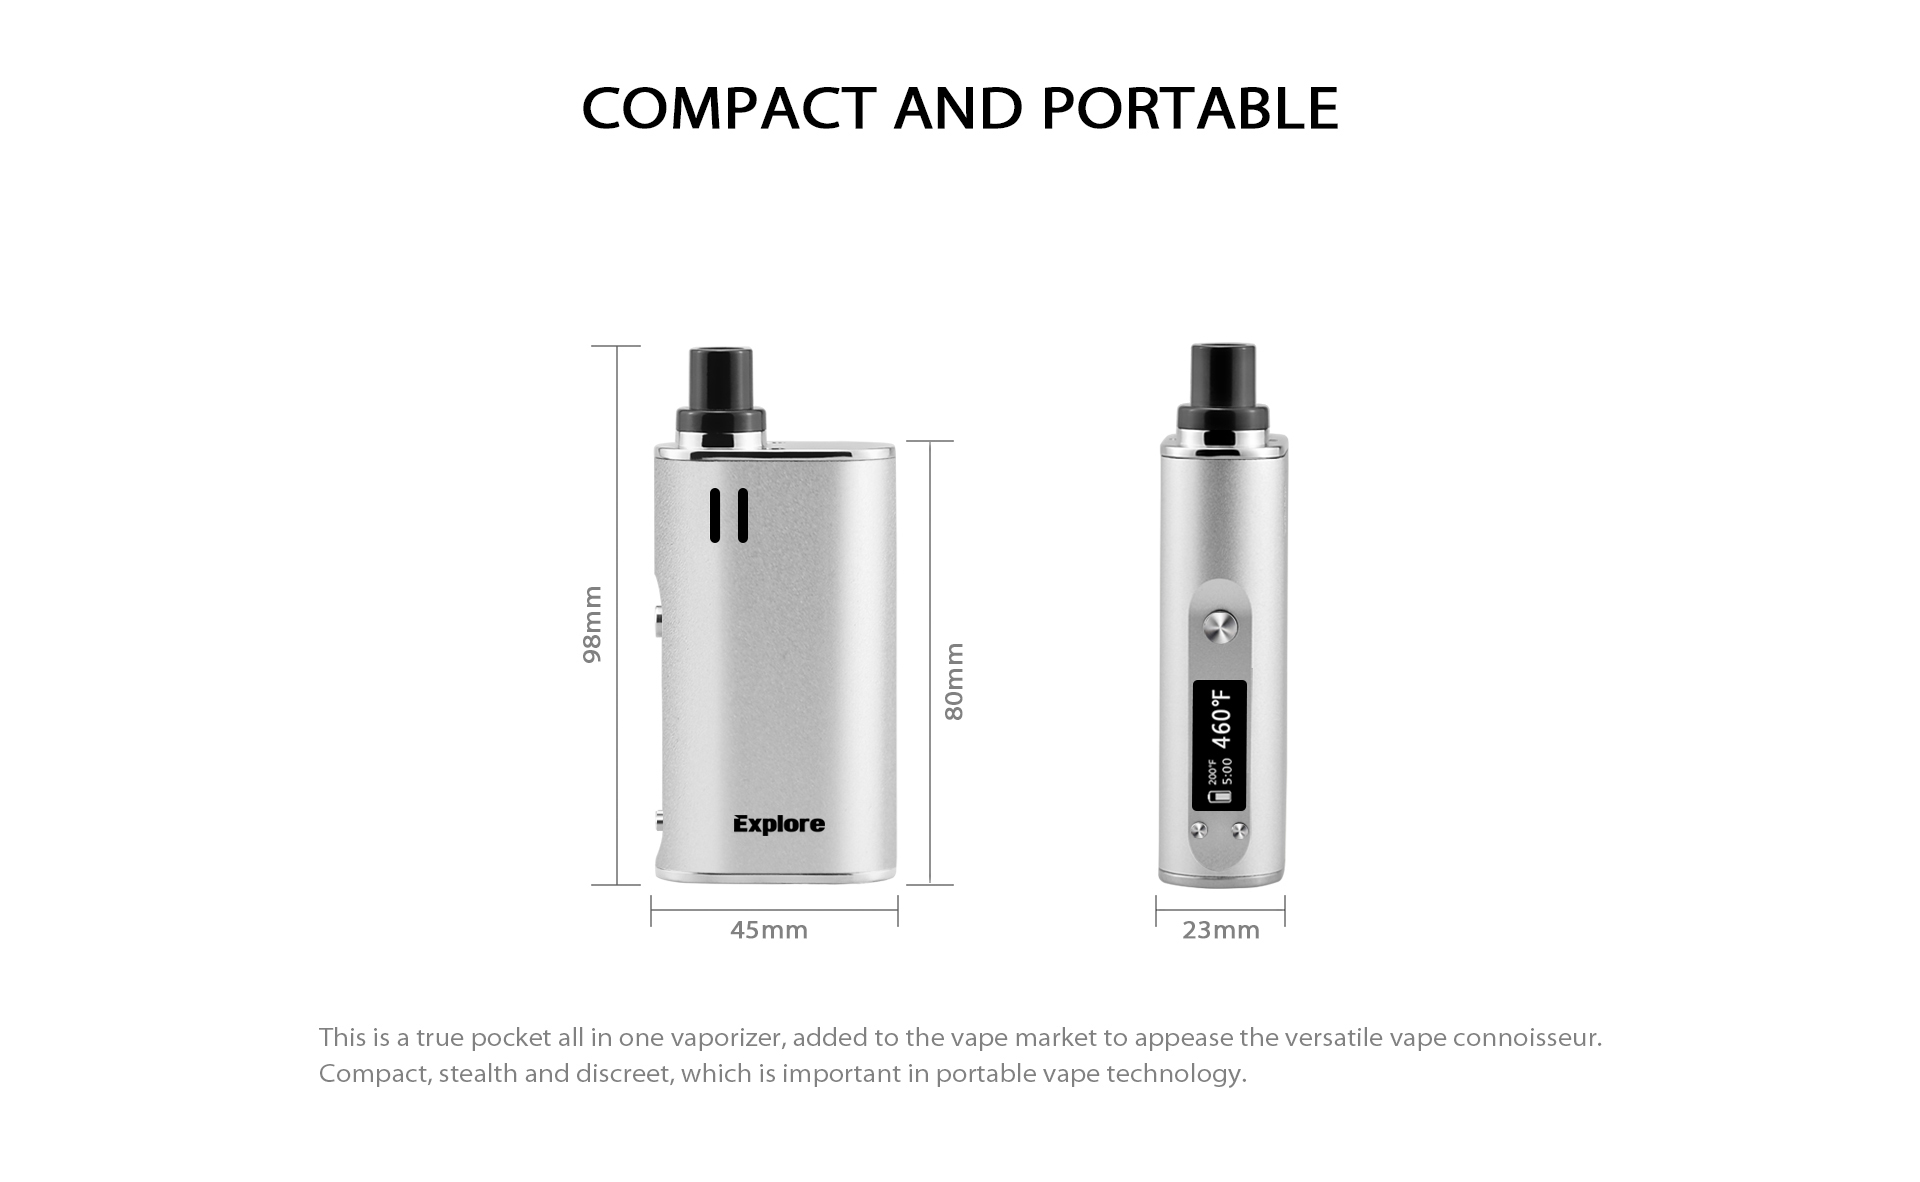 The Yocan Explore is a 2-in-1 Vaporizer that compact and portable.